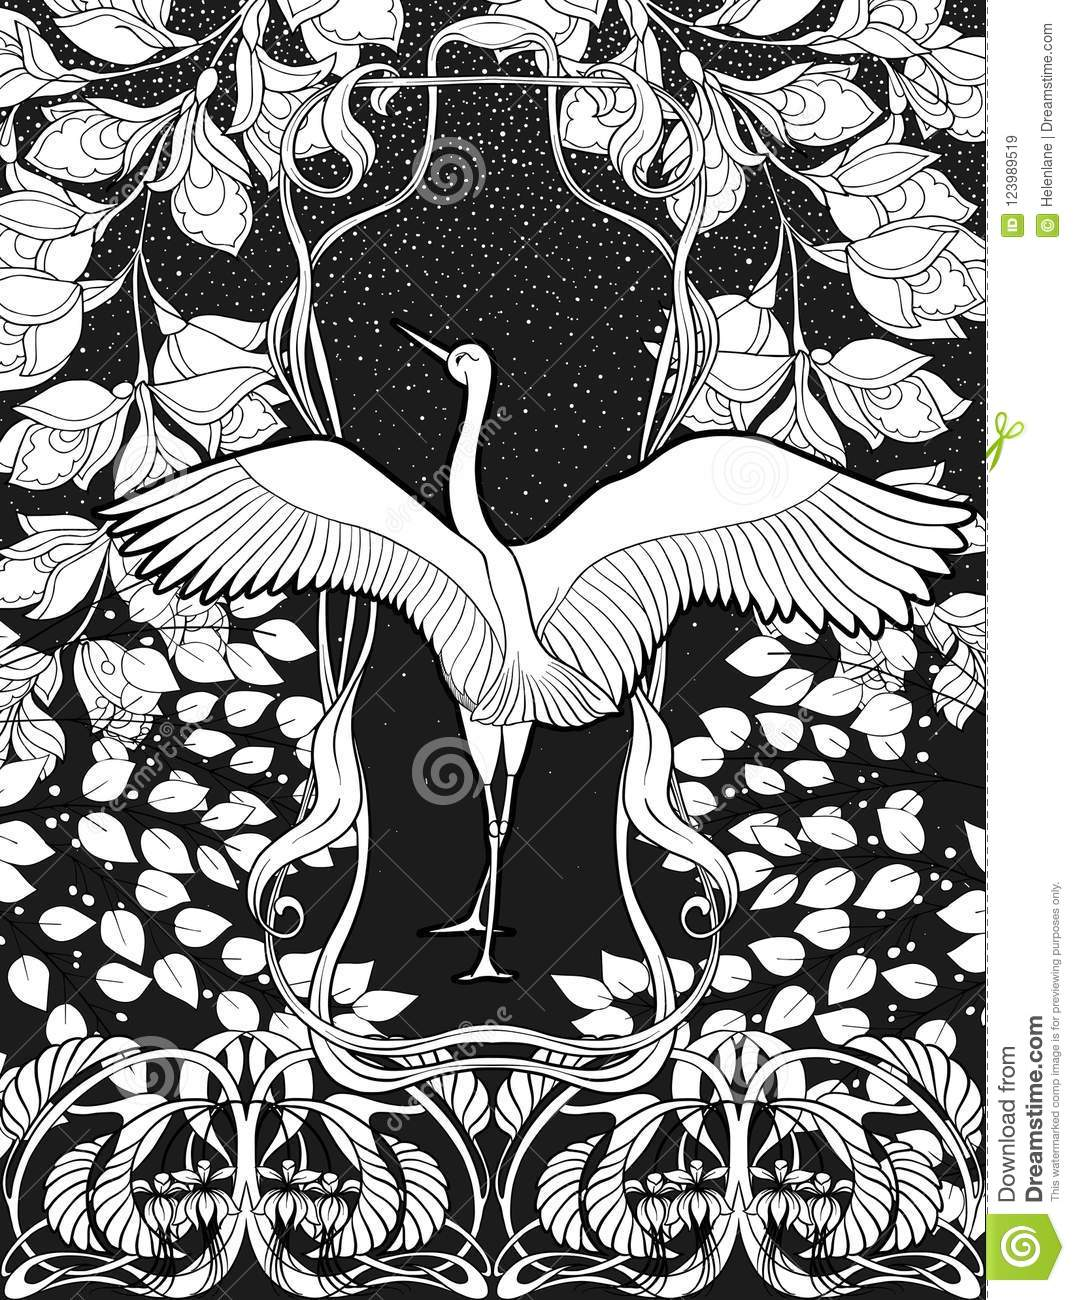 Poster background with decorative flowers and bird in art nouveau style black and white graphics nvector illustration